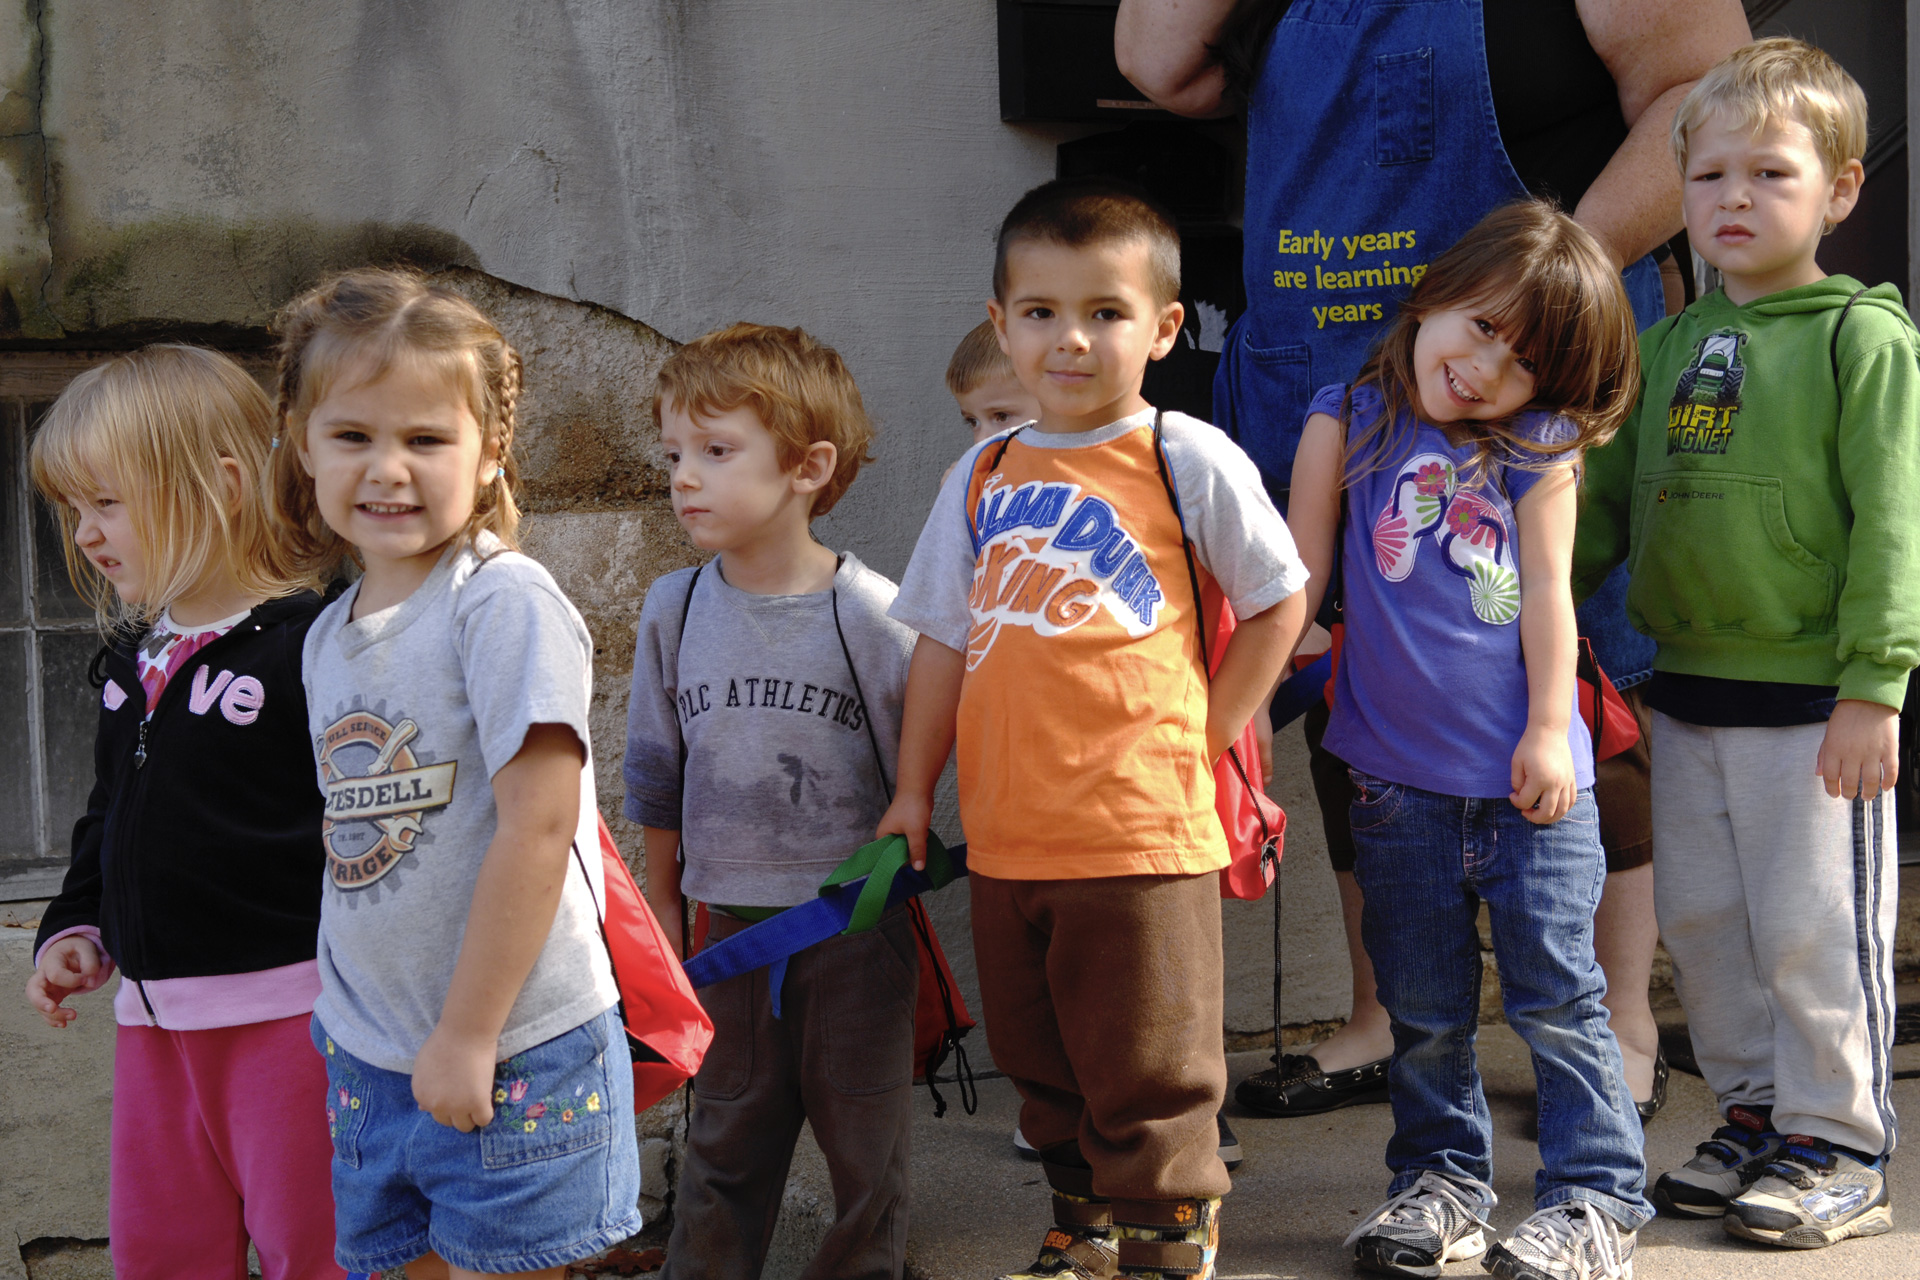 A group of toddlers waits in line